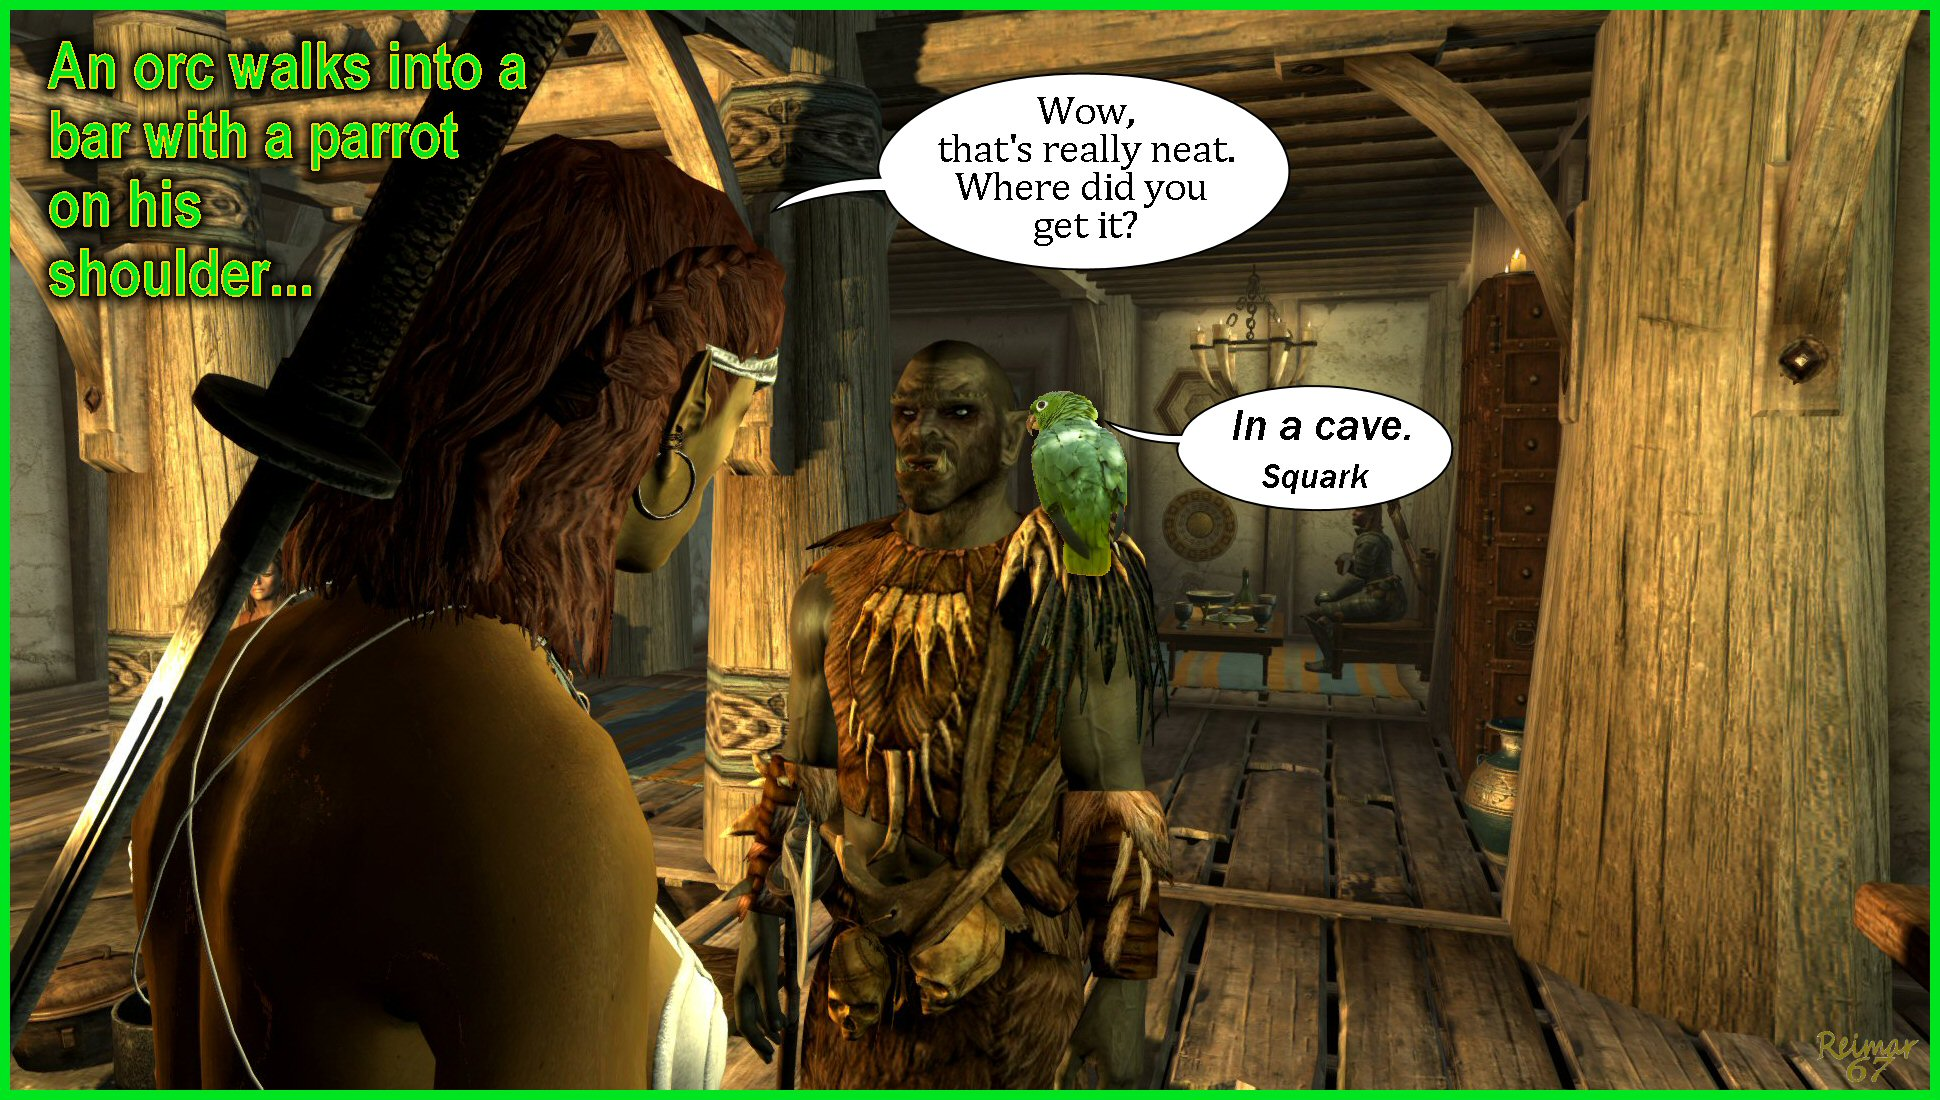 The Orc and the Parrot